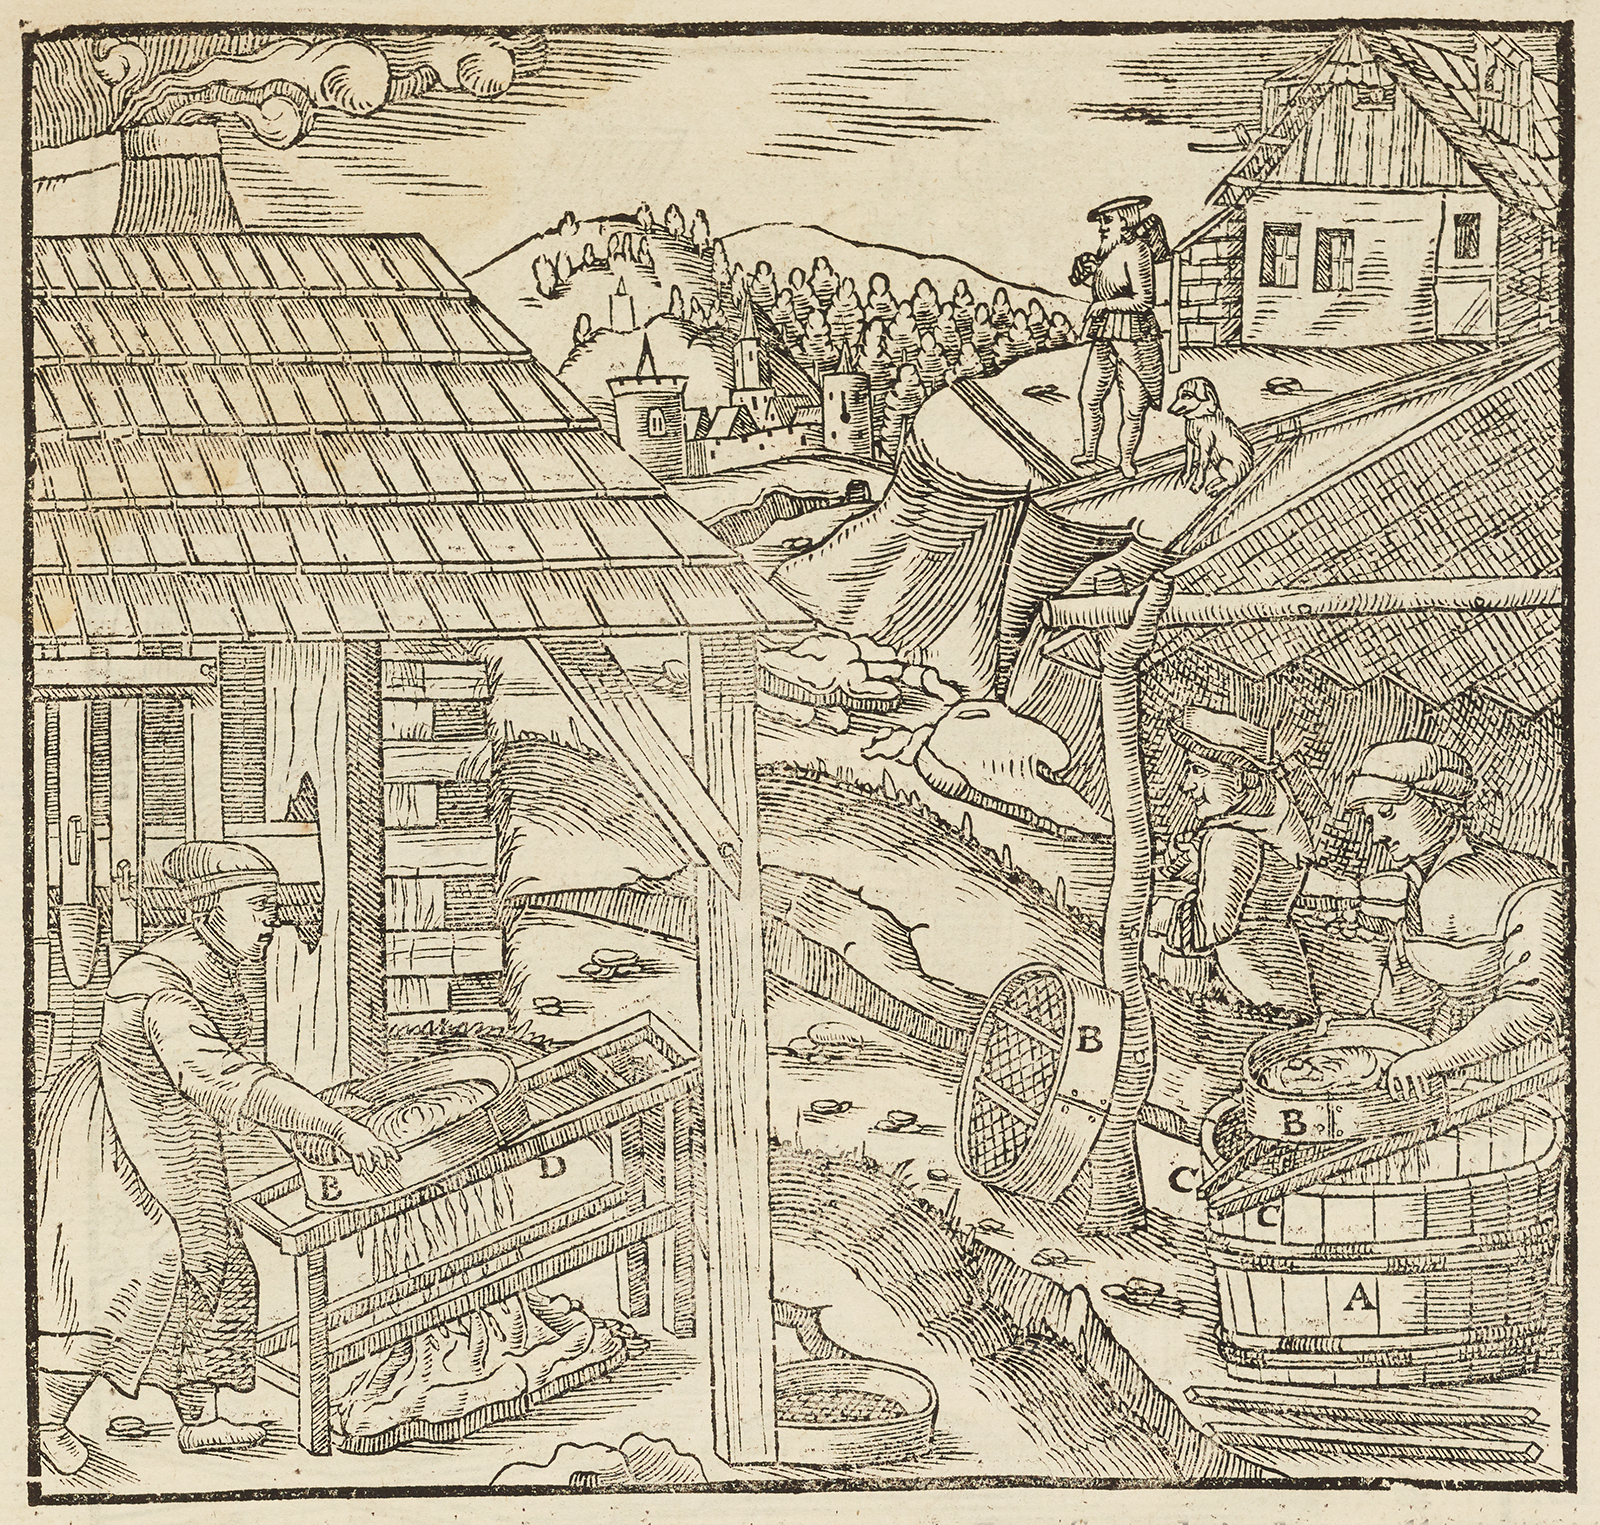 Black and white woodcut of a mining scene